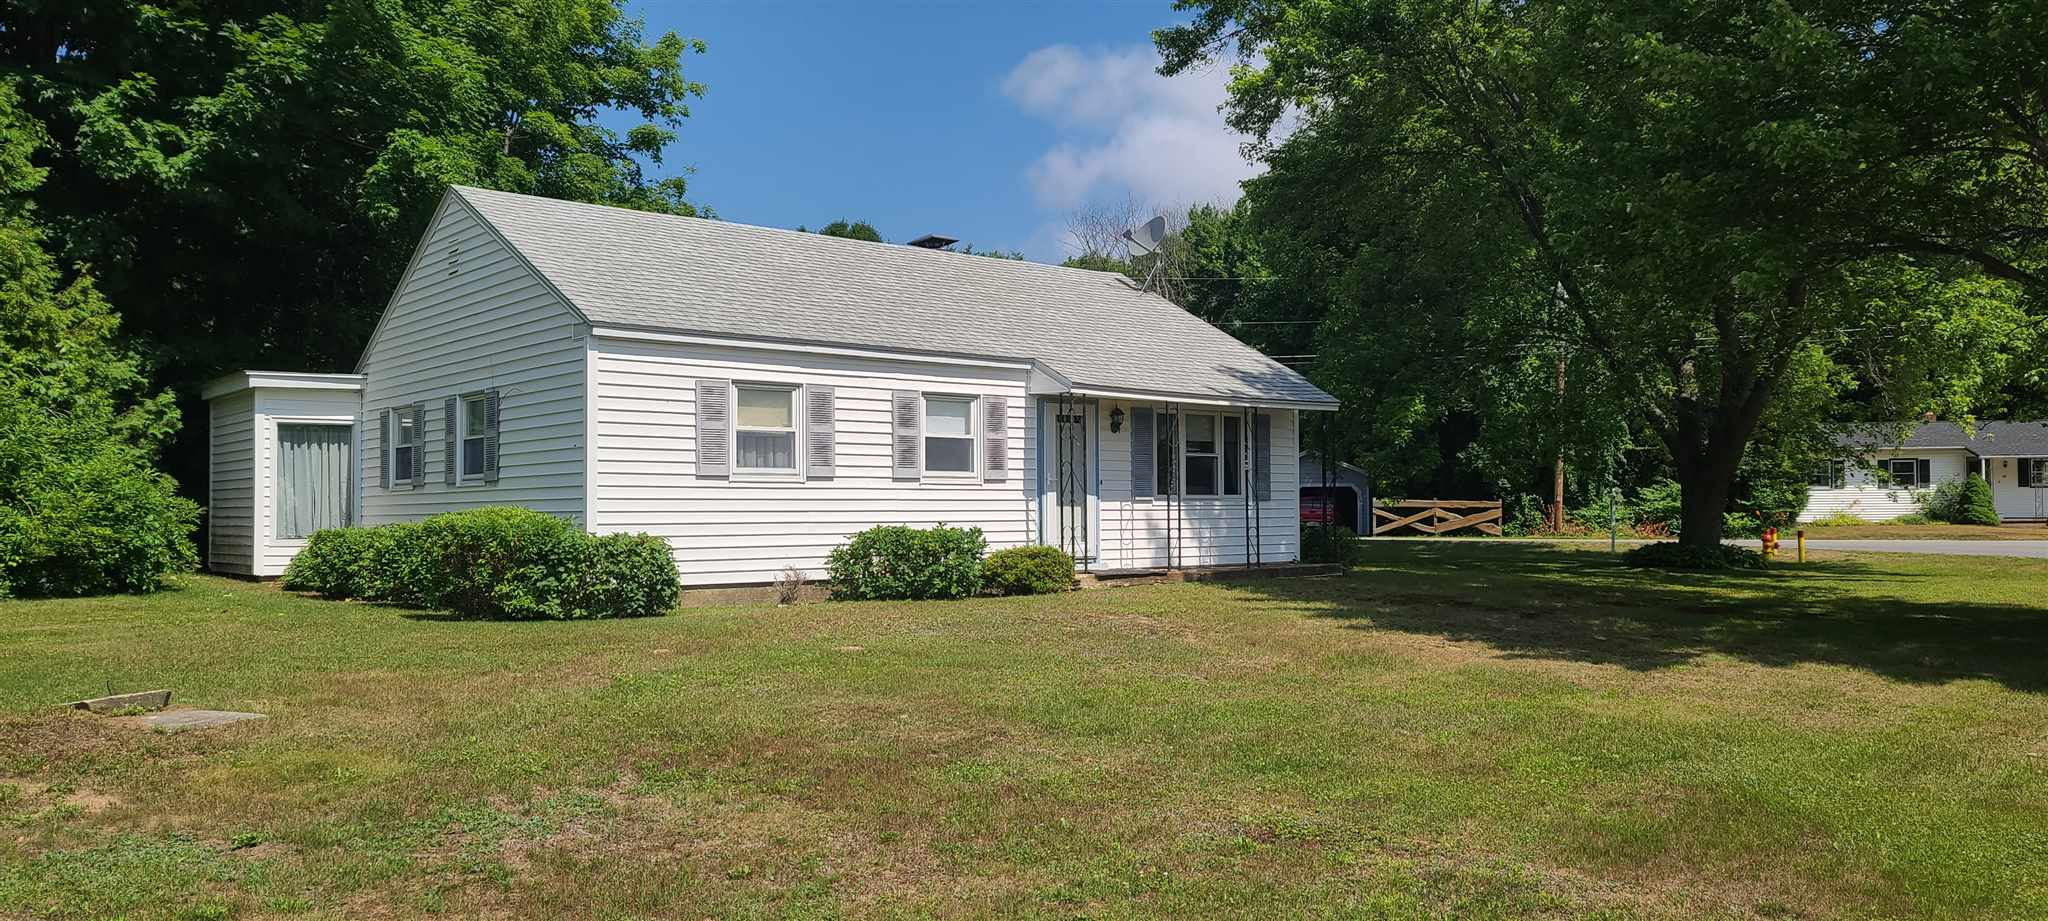 1 Constance Street, Bedford, NH 03110